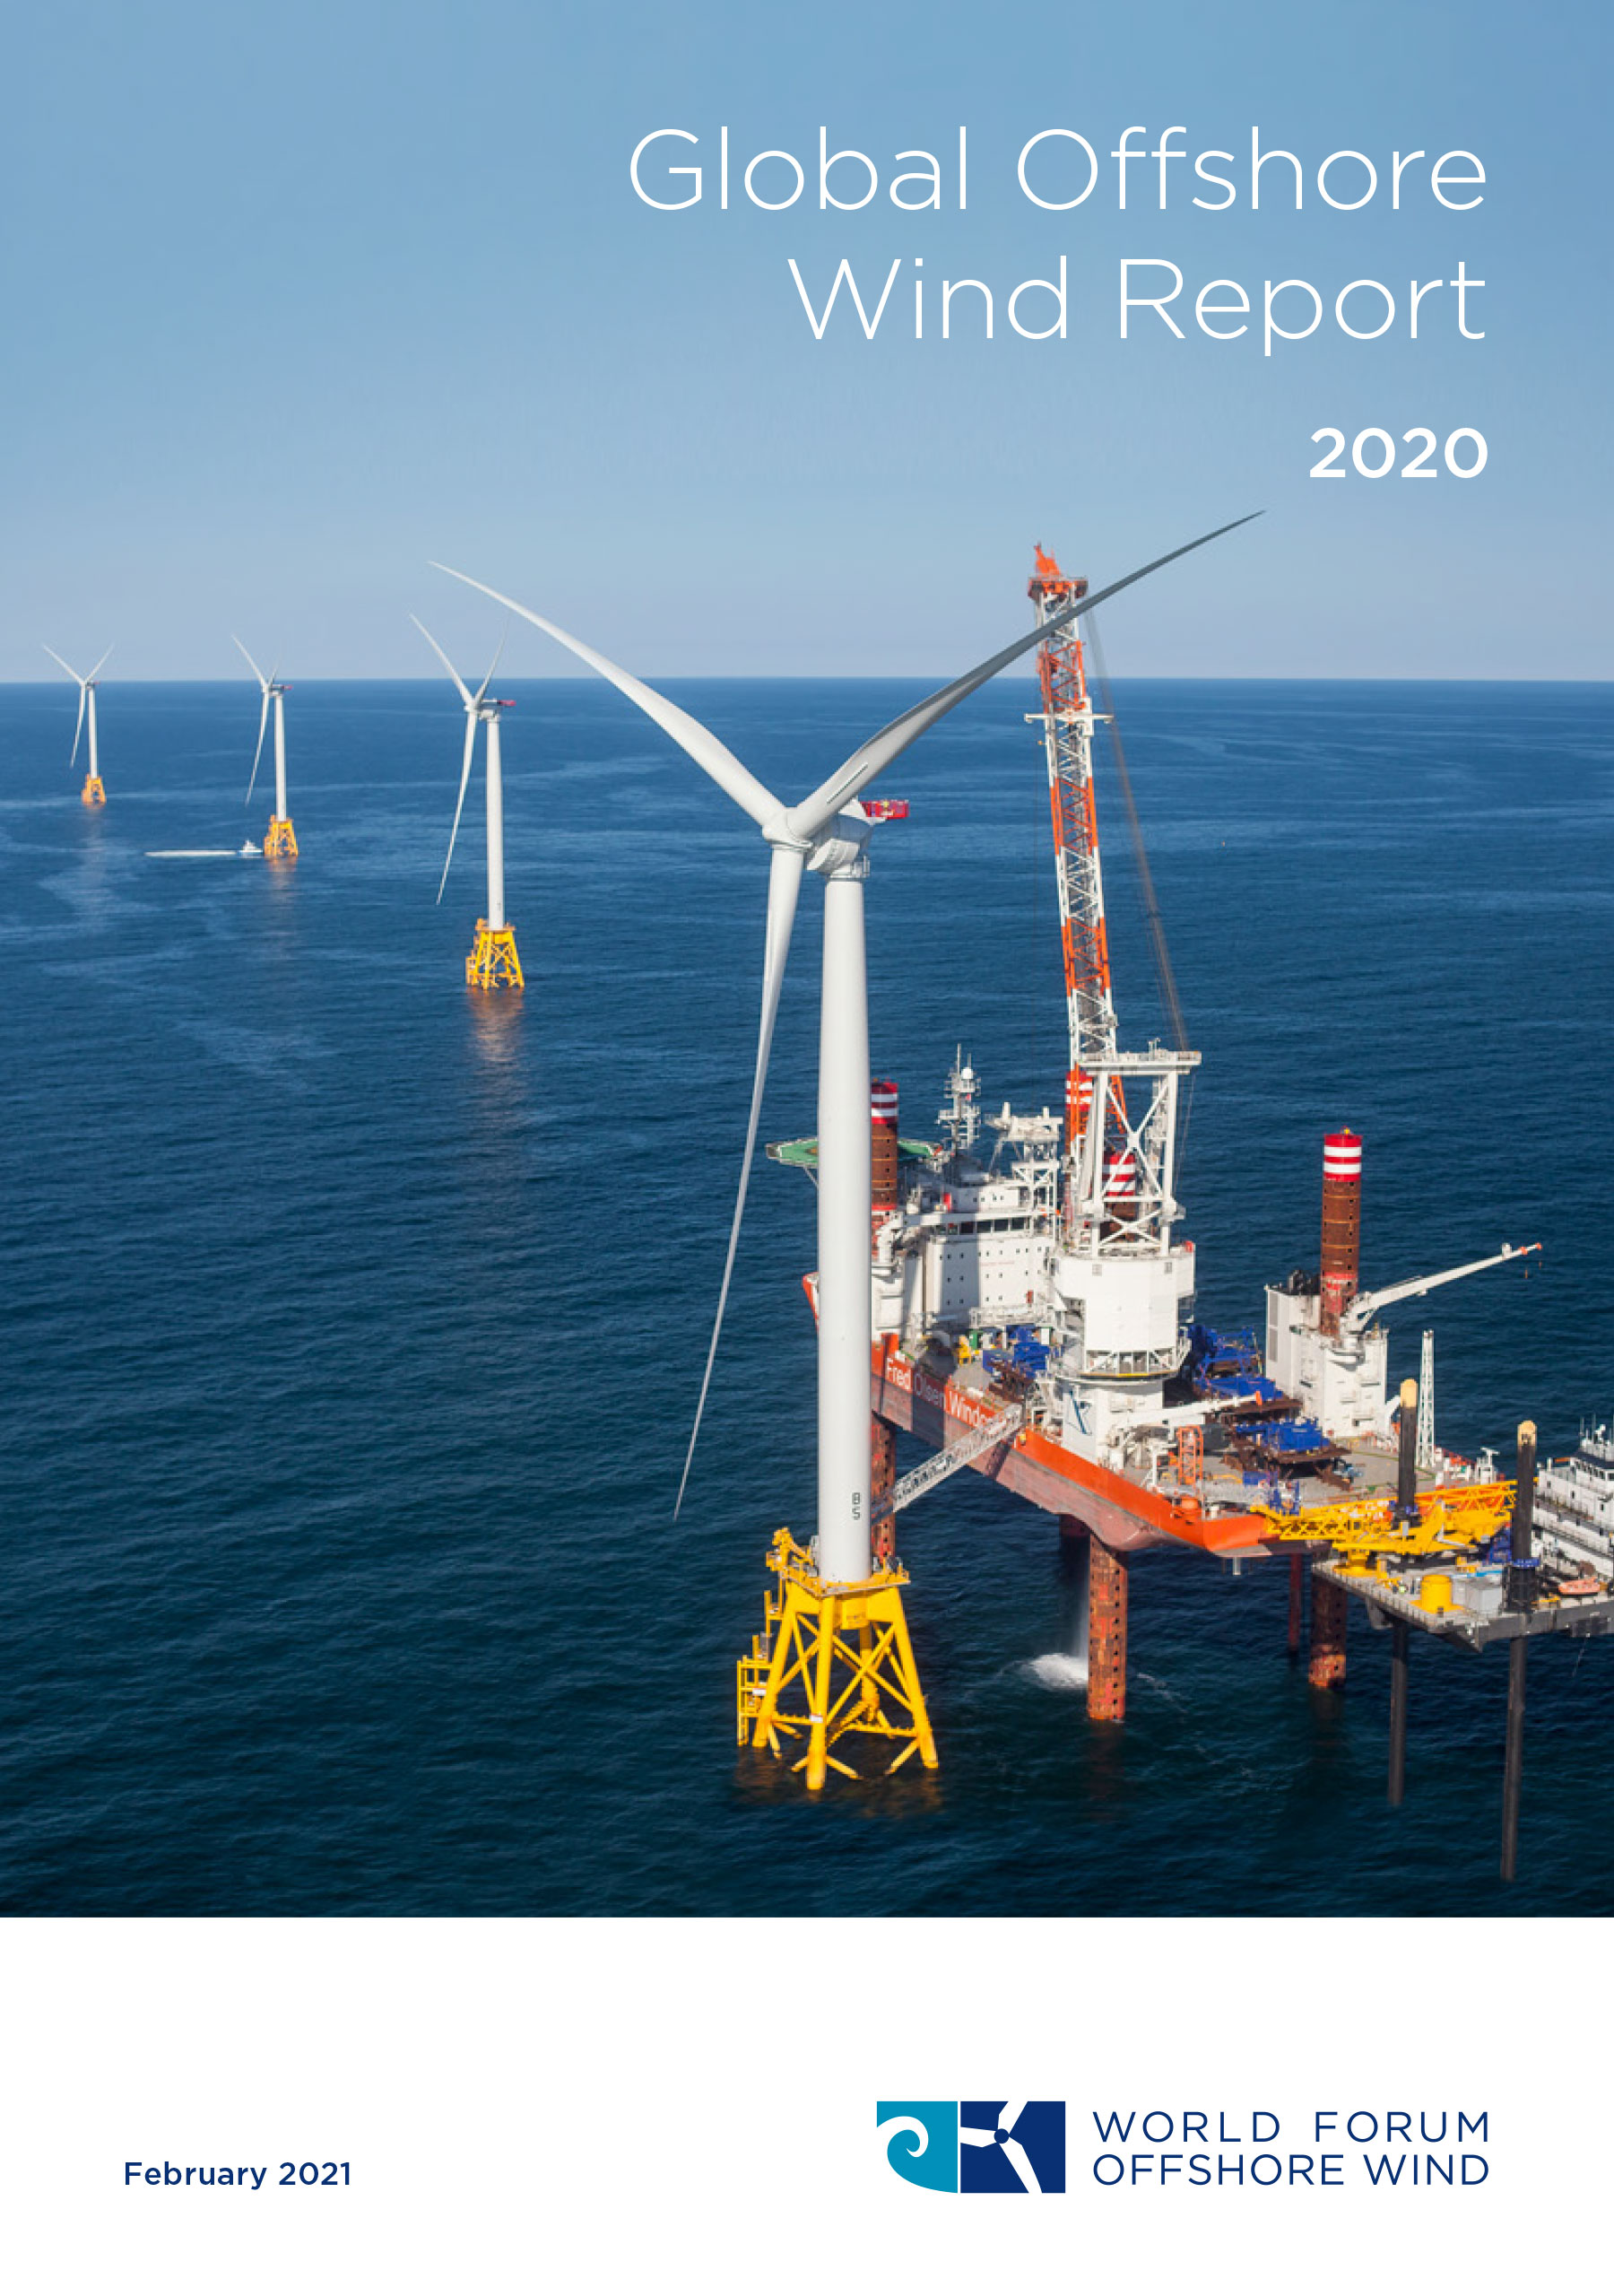 WFO Global Offshore Wind Report 2020